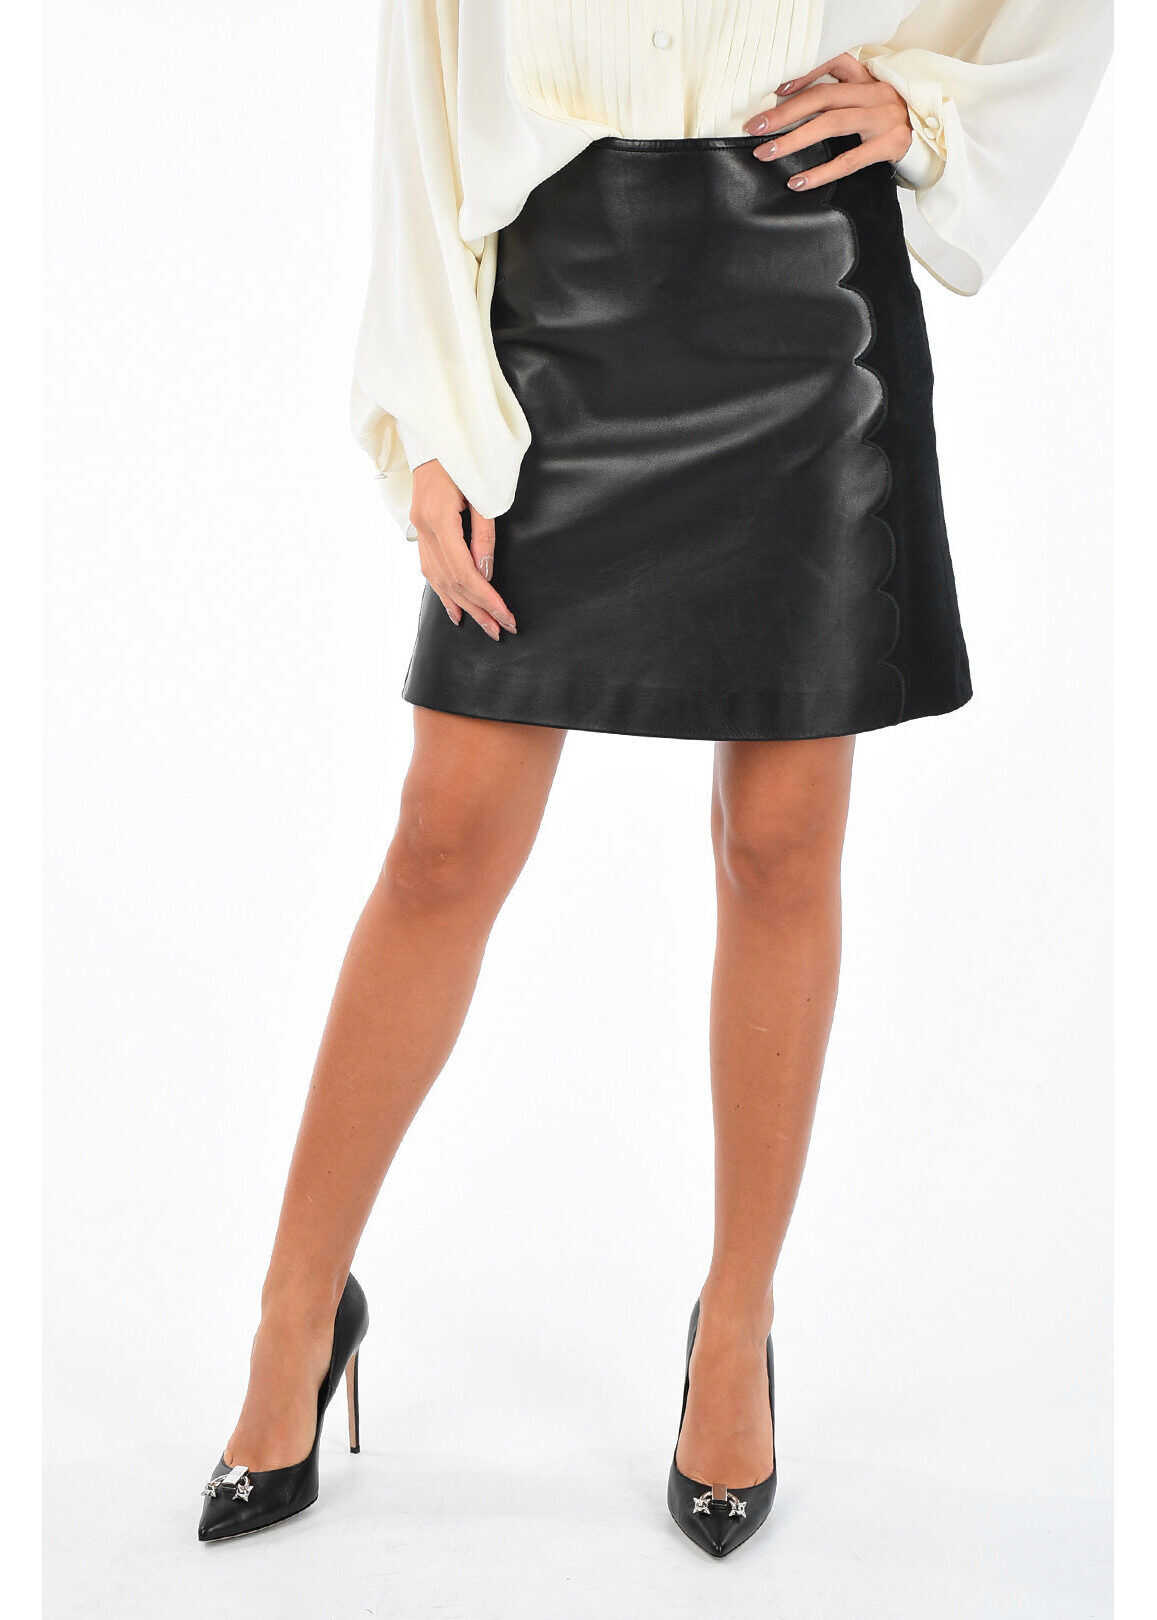 leather and embroidered above knee pencil skirt thumbnail